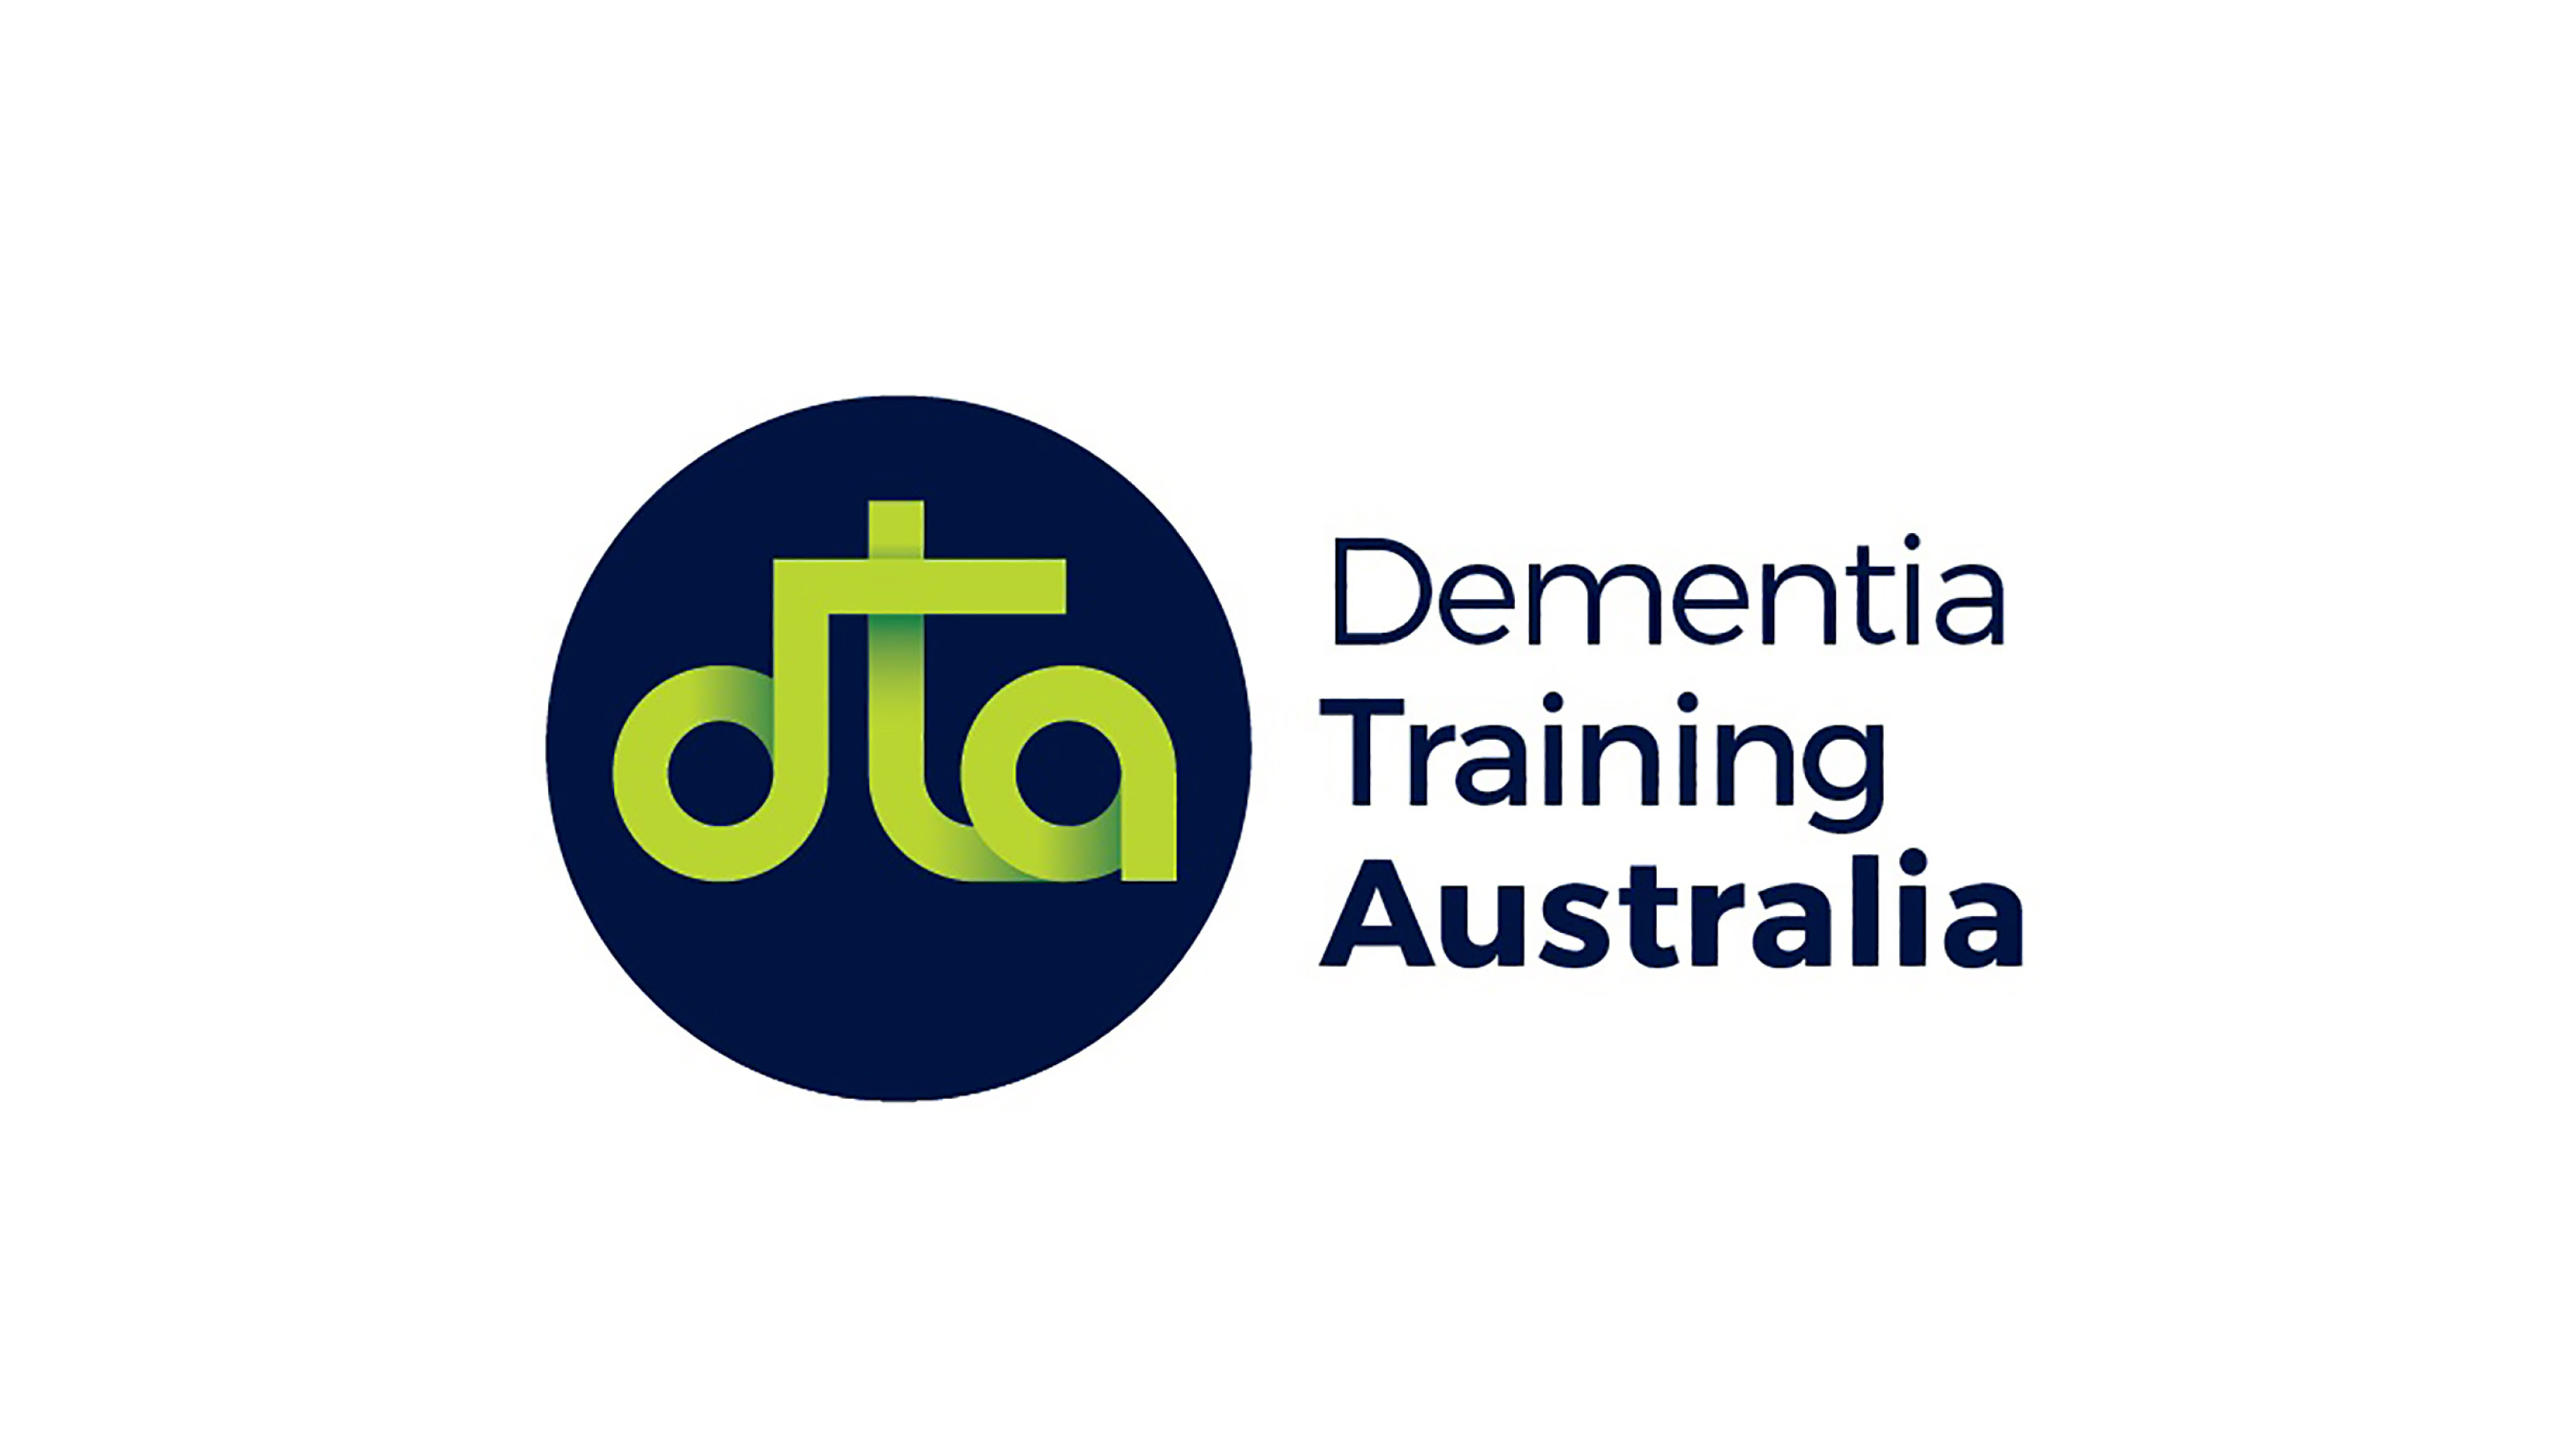 Dementia Training Australia